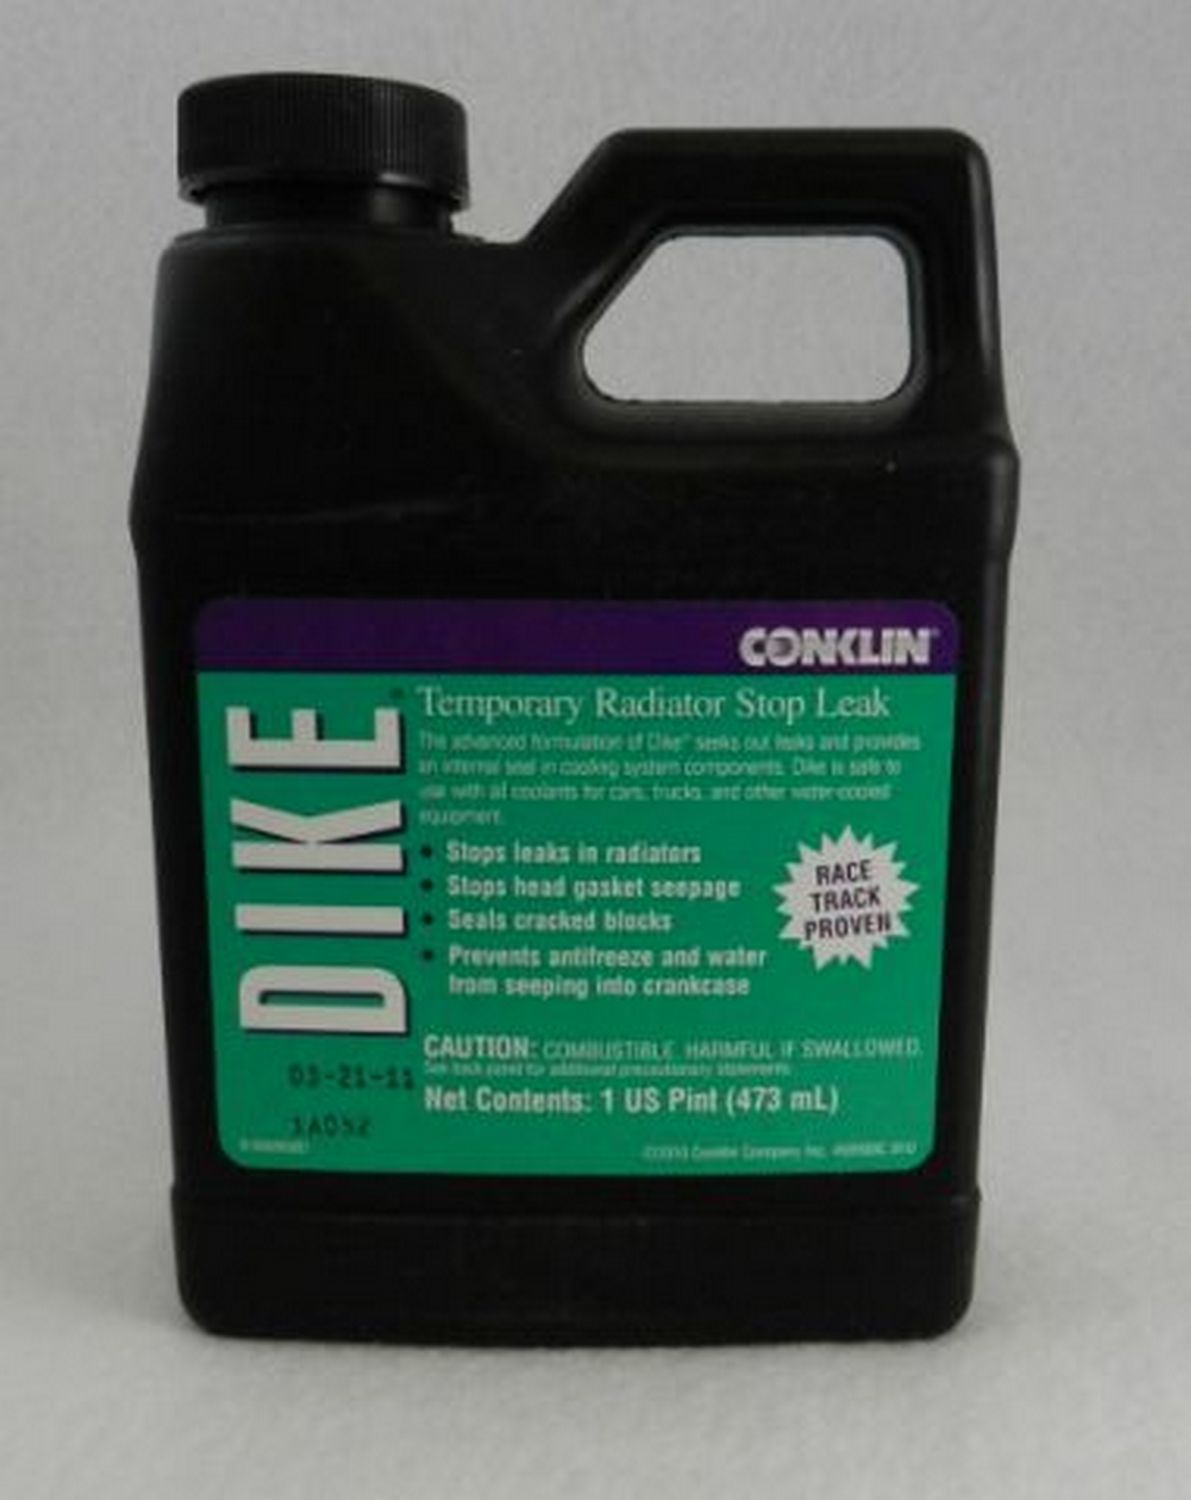 C & R Racing Radiators 59-00001 Antifreeze / Coolant Additive, Dike Stop Leak, 16.00 oz Bottle, Each